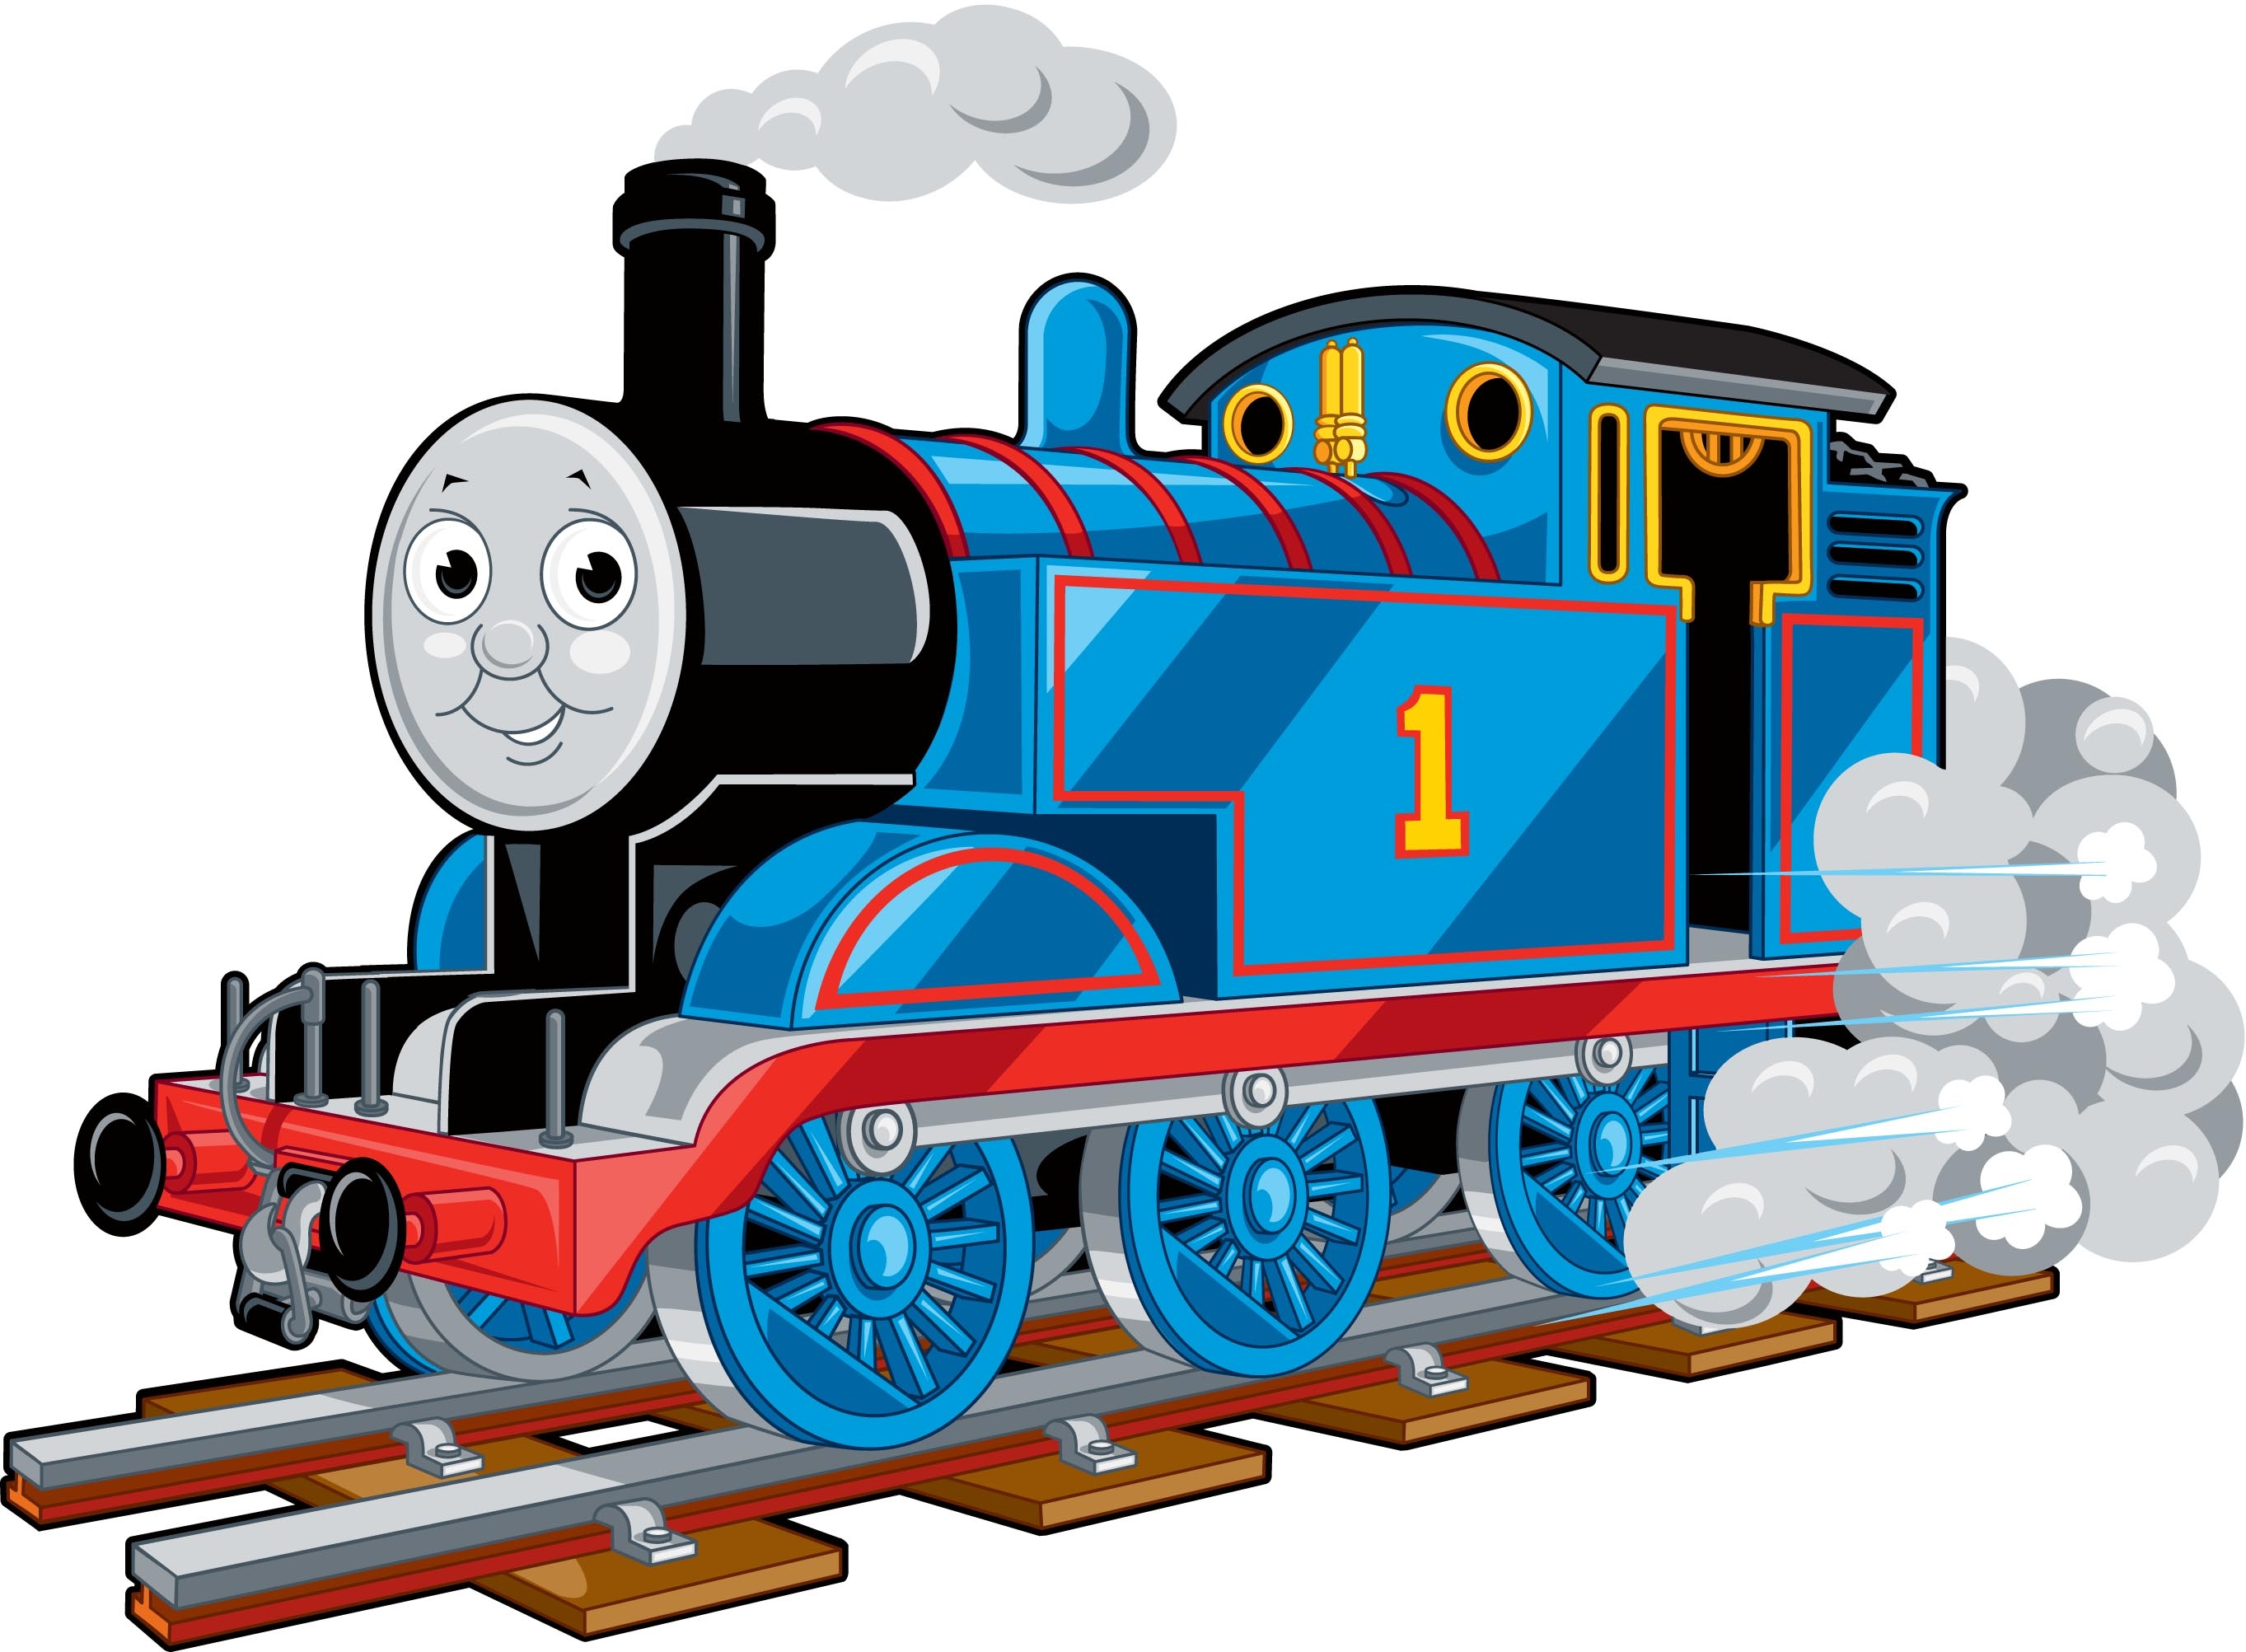 2726x2005 Clever Thomas The Train Clipart Top 83 Clip Art Free Image